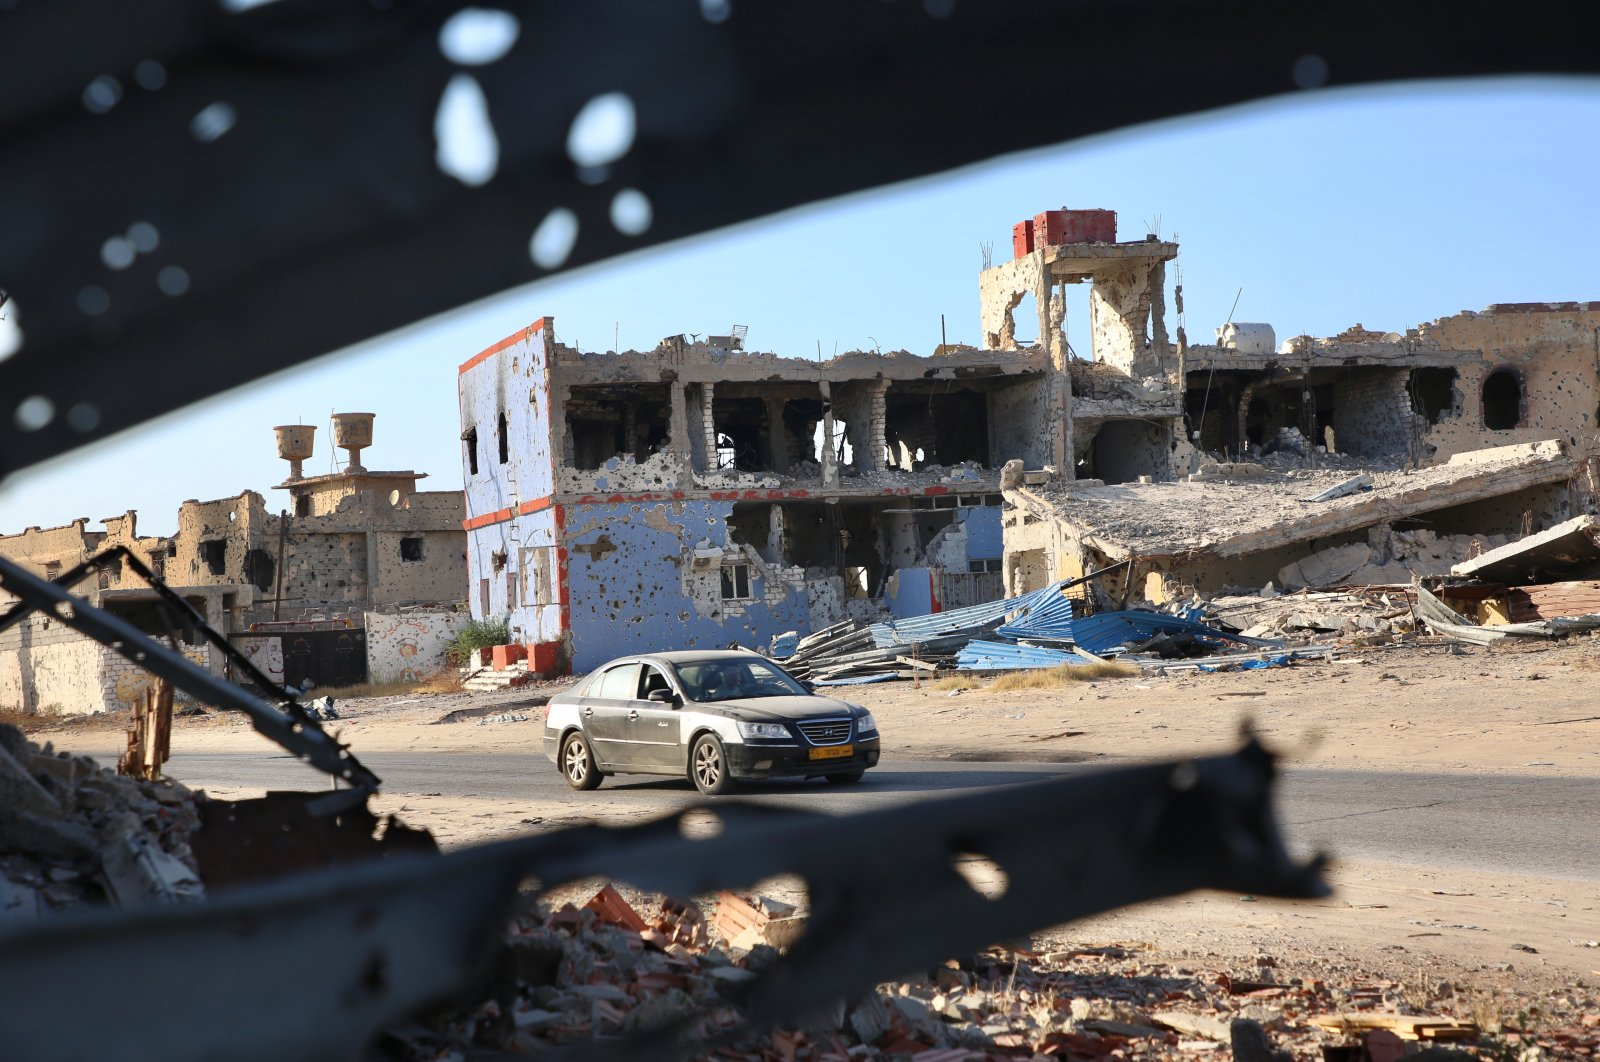 Although the capital province of Tripoli has been liberated from Haftar forces and its backers on June 4, the city still carries the damages left by the constant attacks, June 27, 2020. (AA)